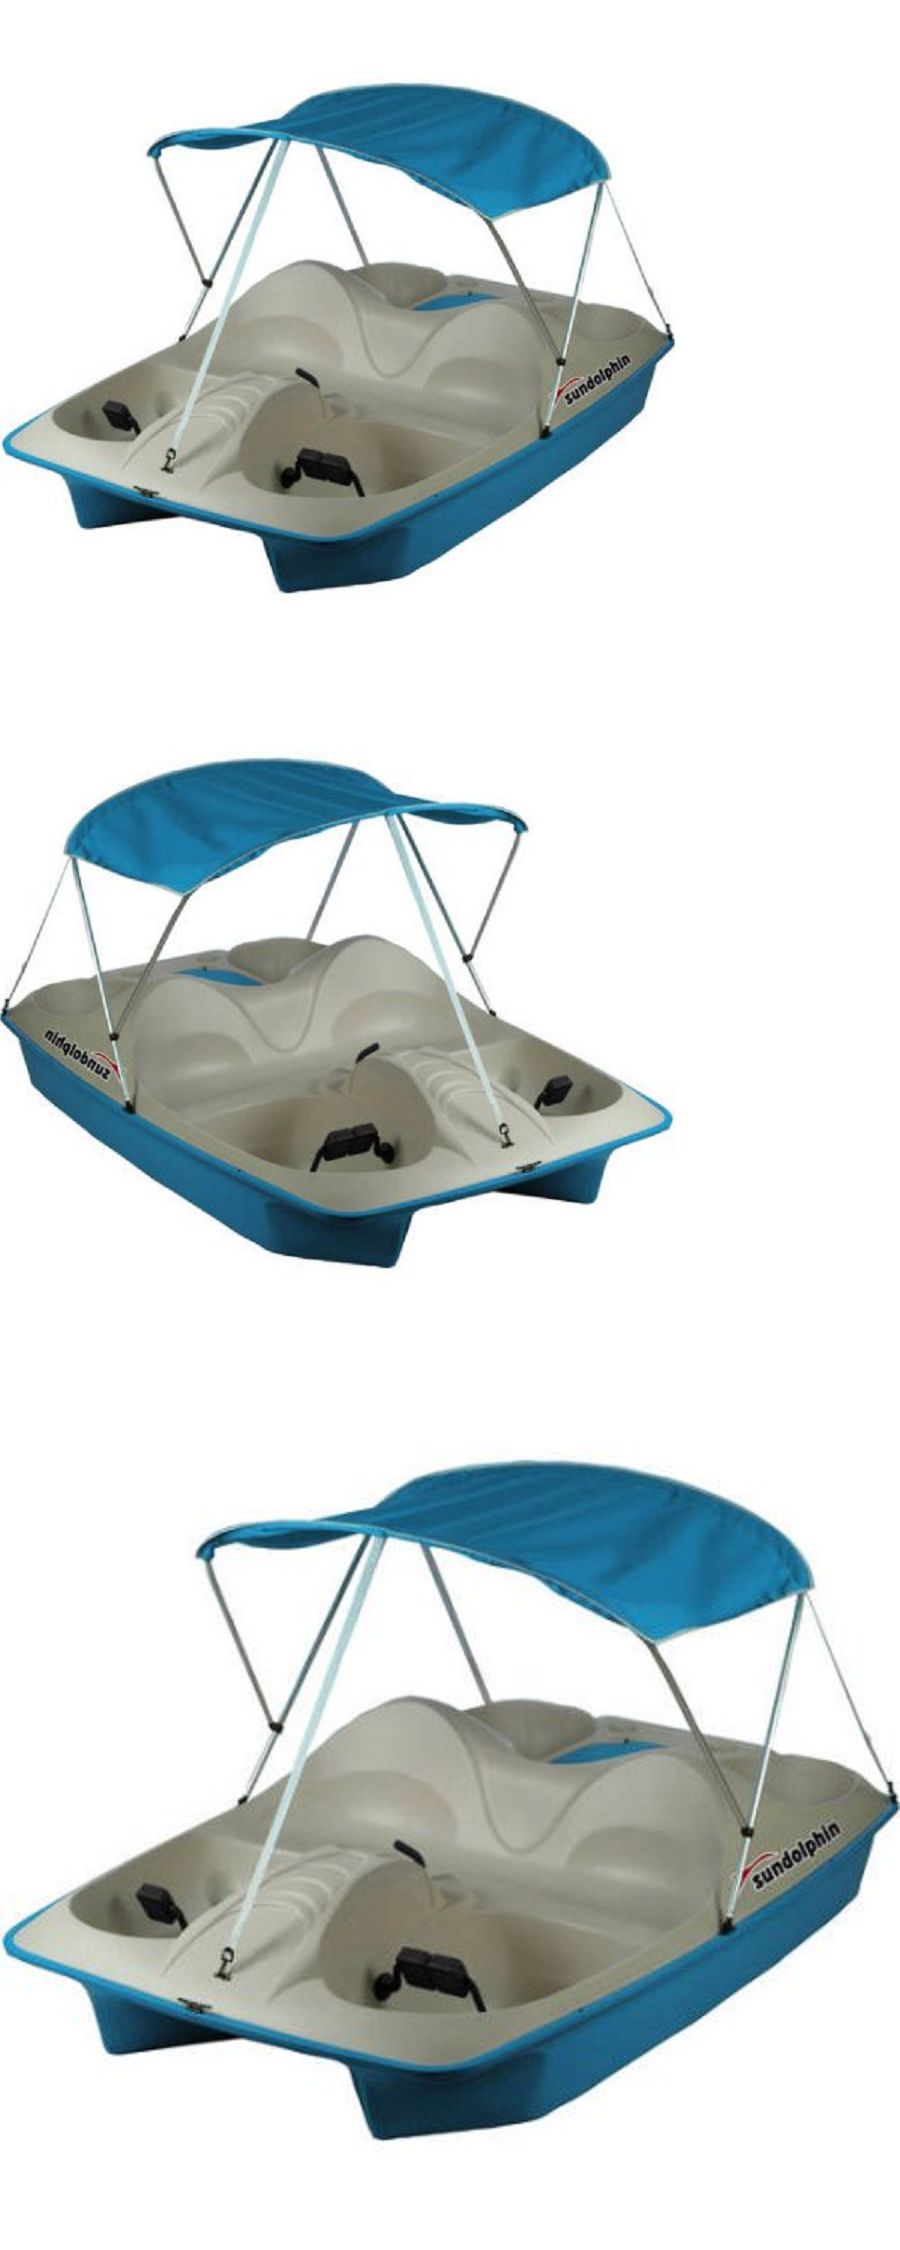 Other Kayak Canoe and Rafting 36123 Pedal Boats Canopy Paddle Adjustable Comfort Seats For Lake  sc 1 st  Pinterest & Other Kayak Canoe and Rafting 36123: Pedal Boats Canopy Paddle ...